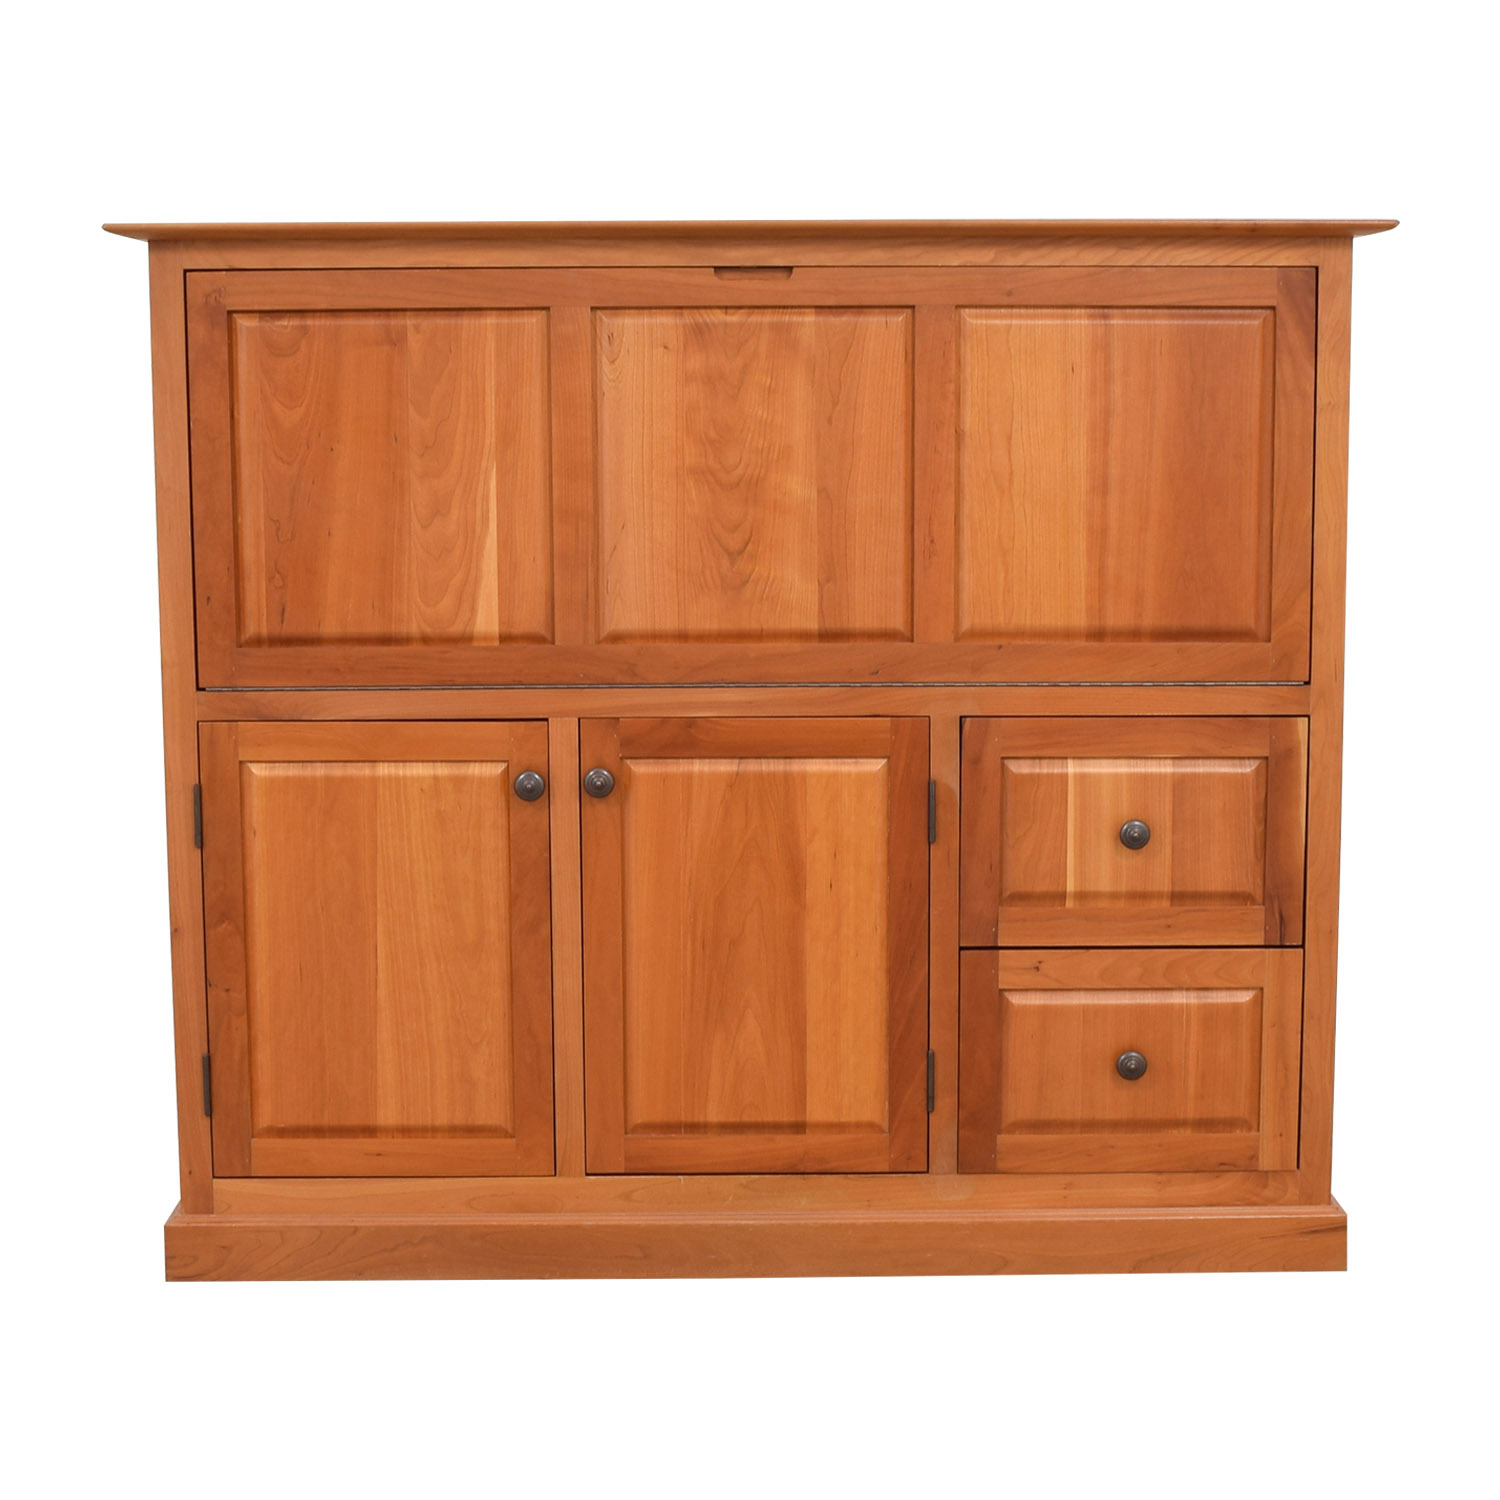 Copeland Copeland Wood Secretary Desk with Tray dimensions